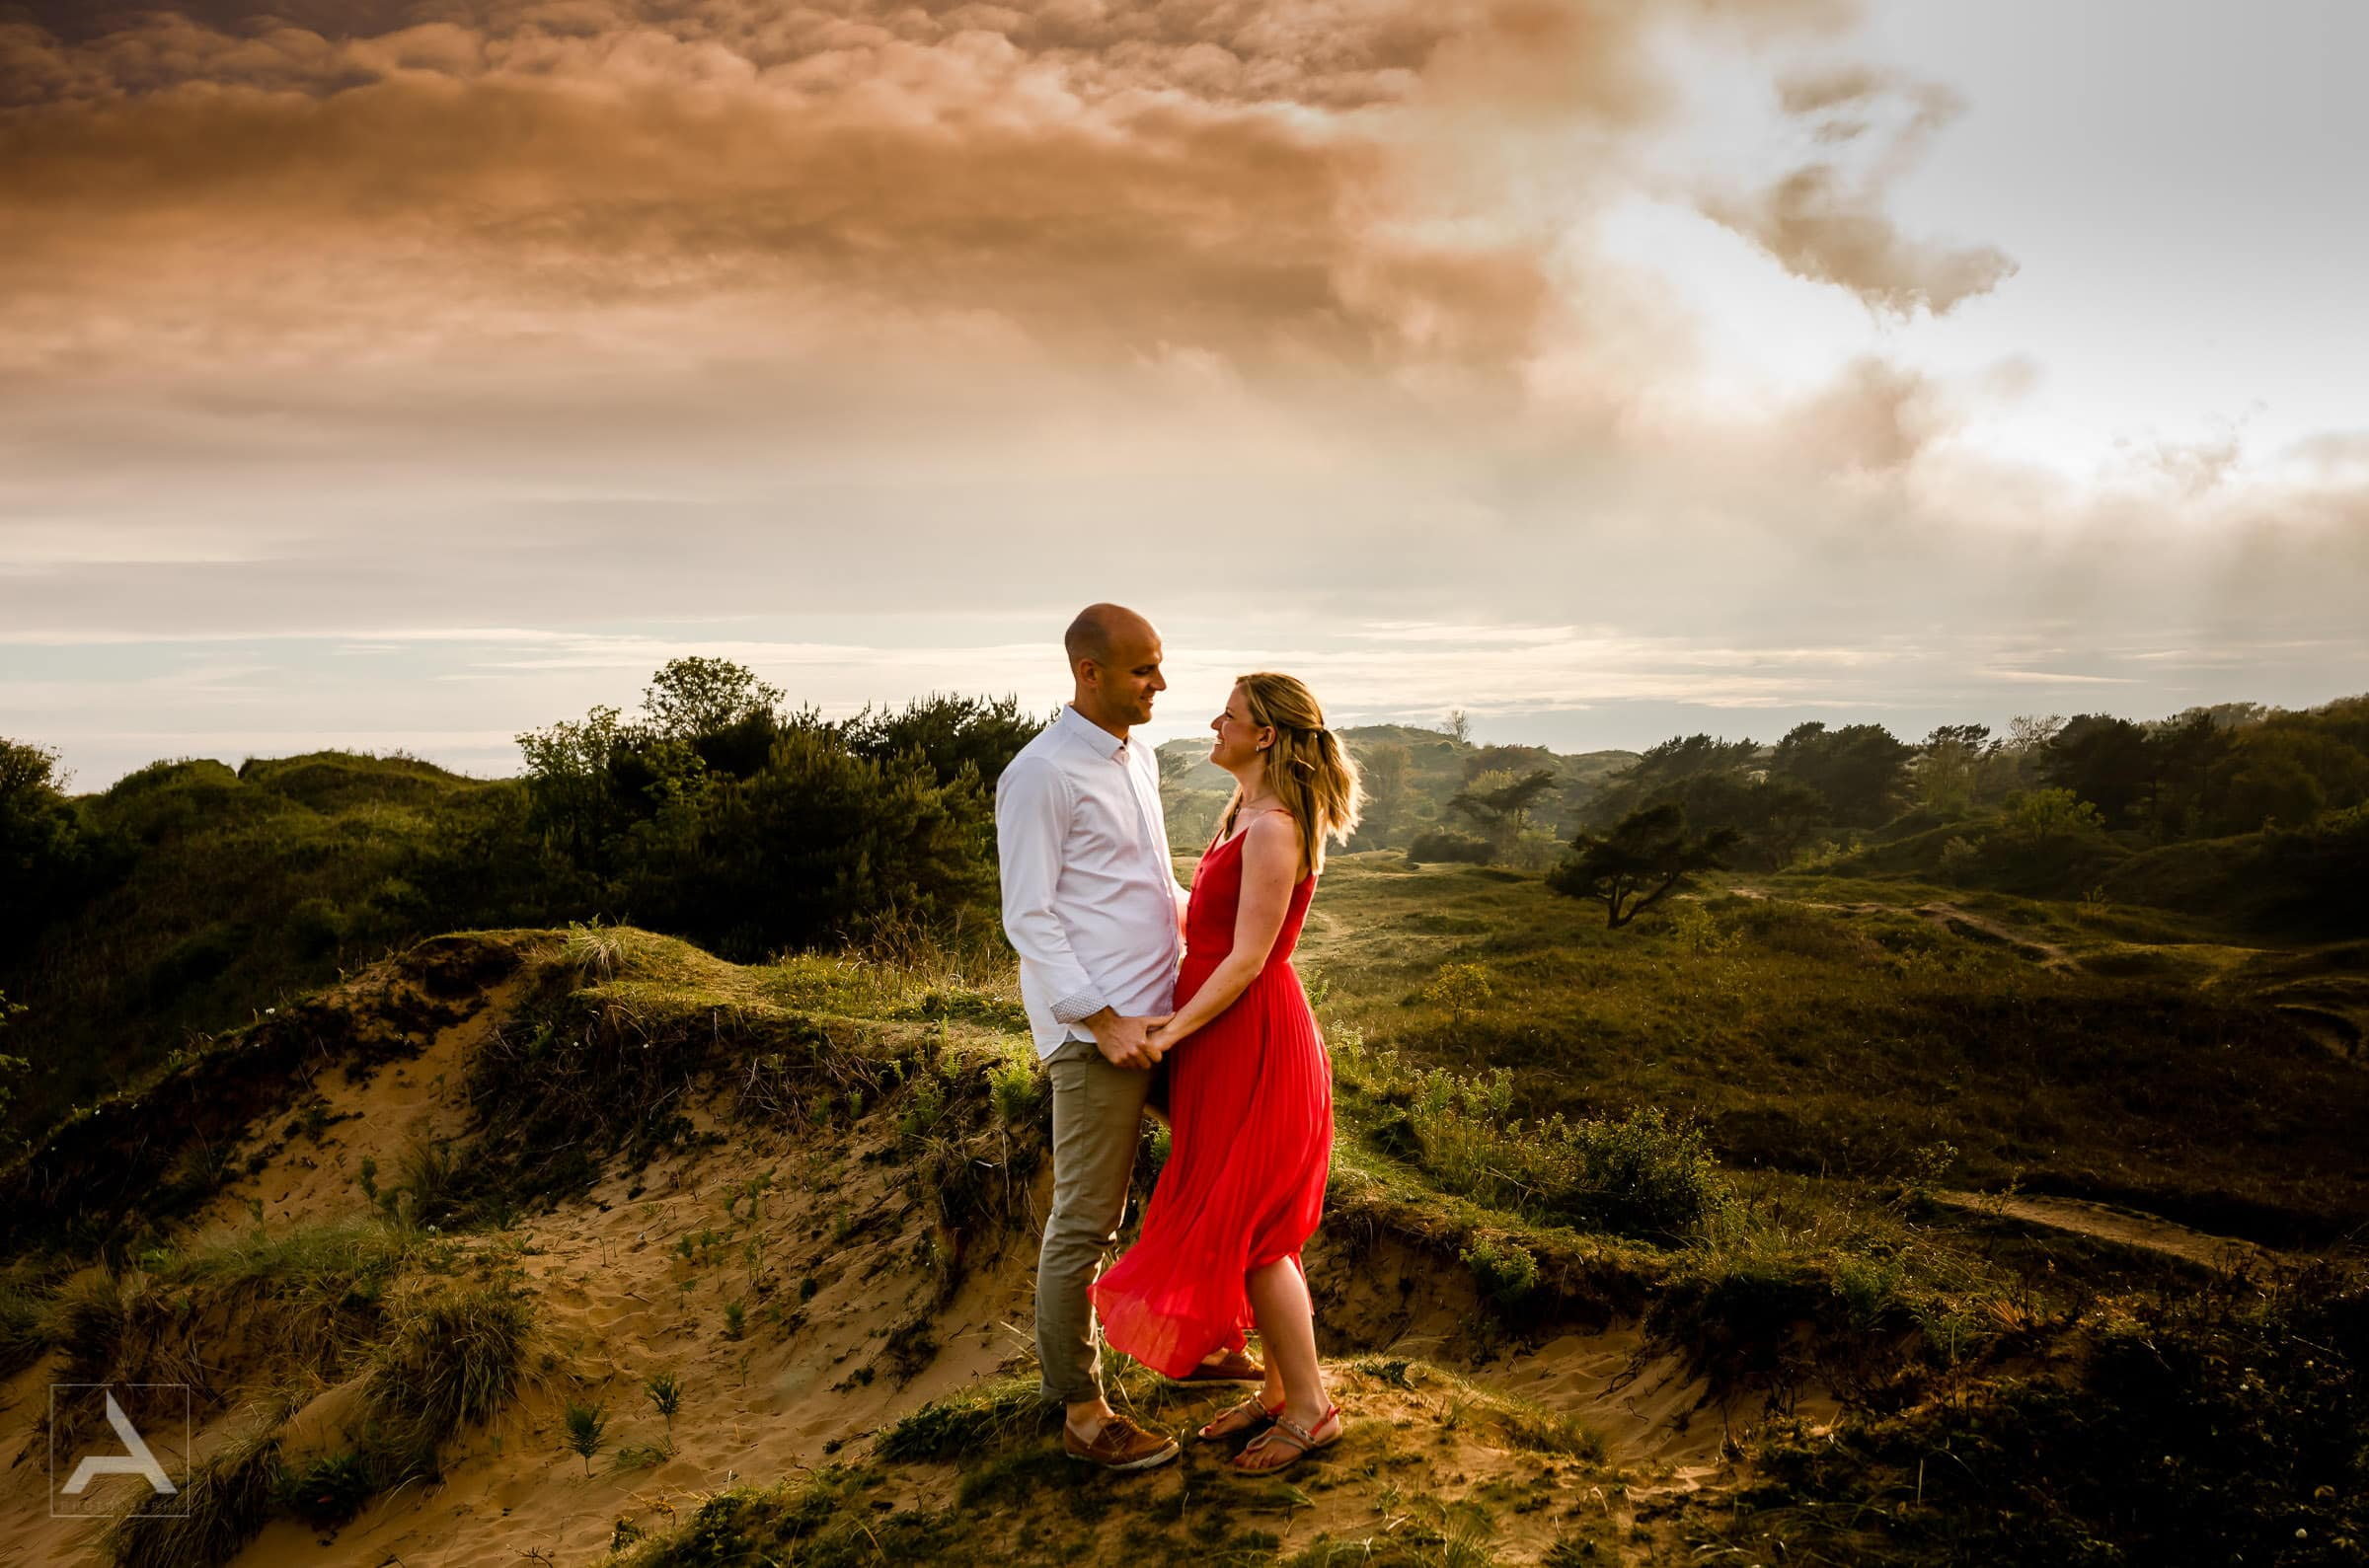 Engagement & Elopement Photography UK - Photoshoot Merthyr Mawr Sand Dunes